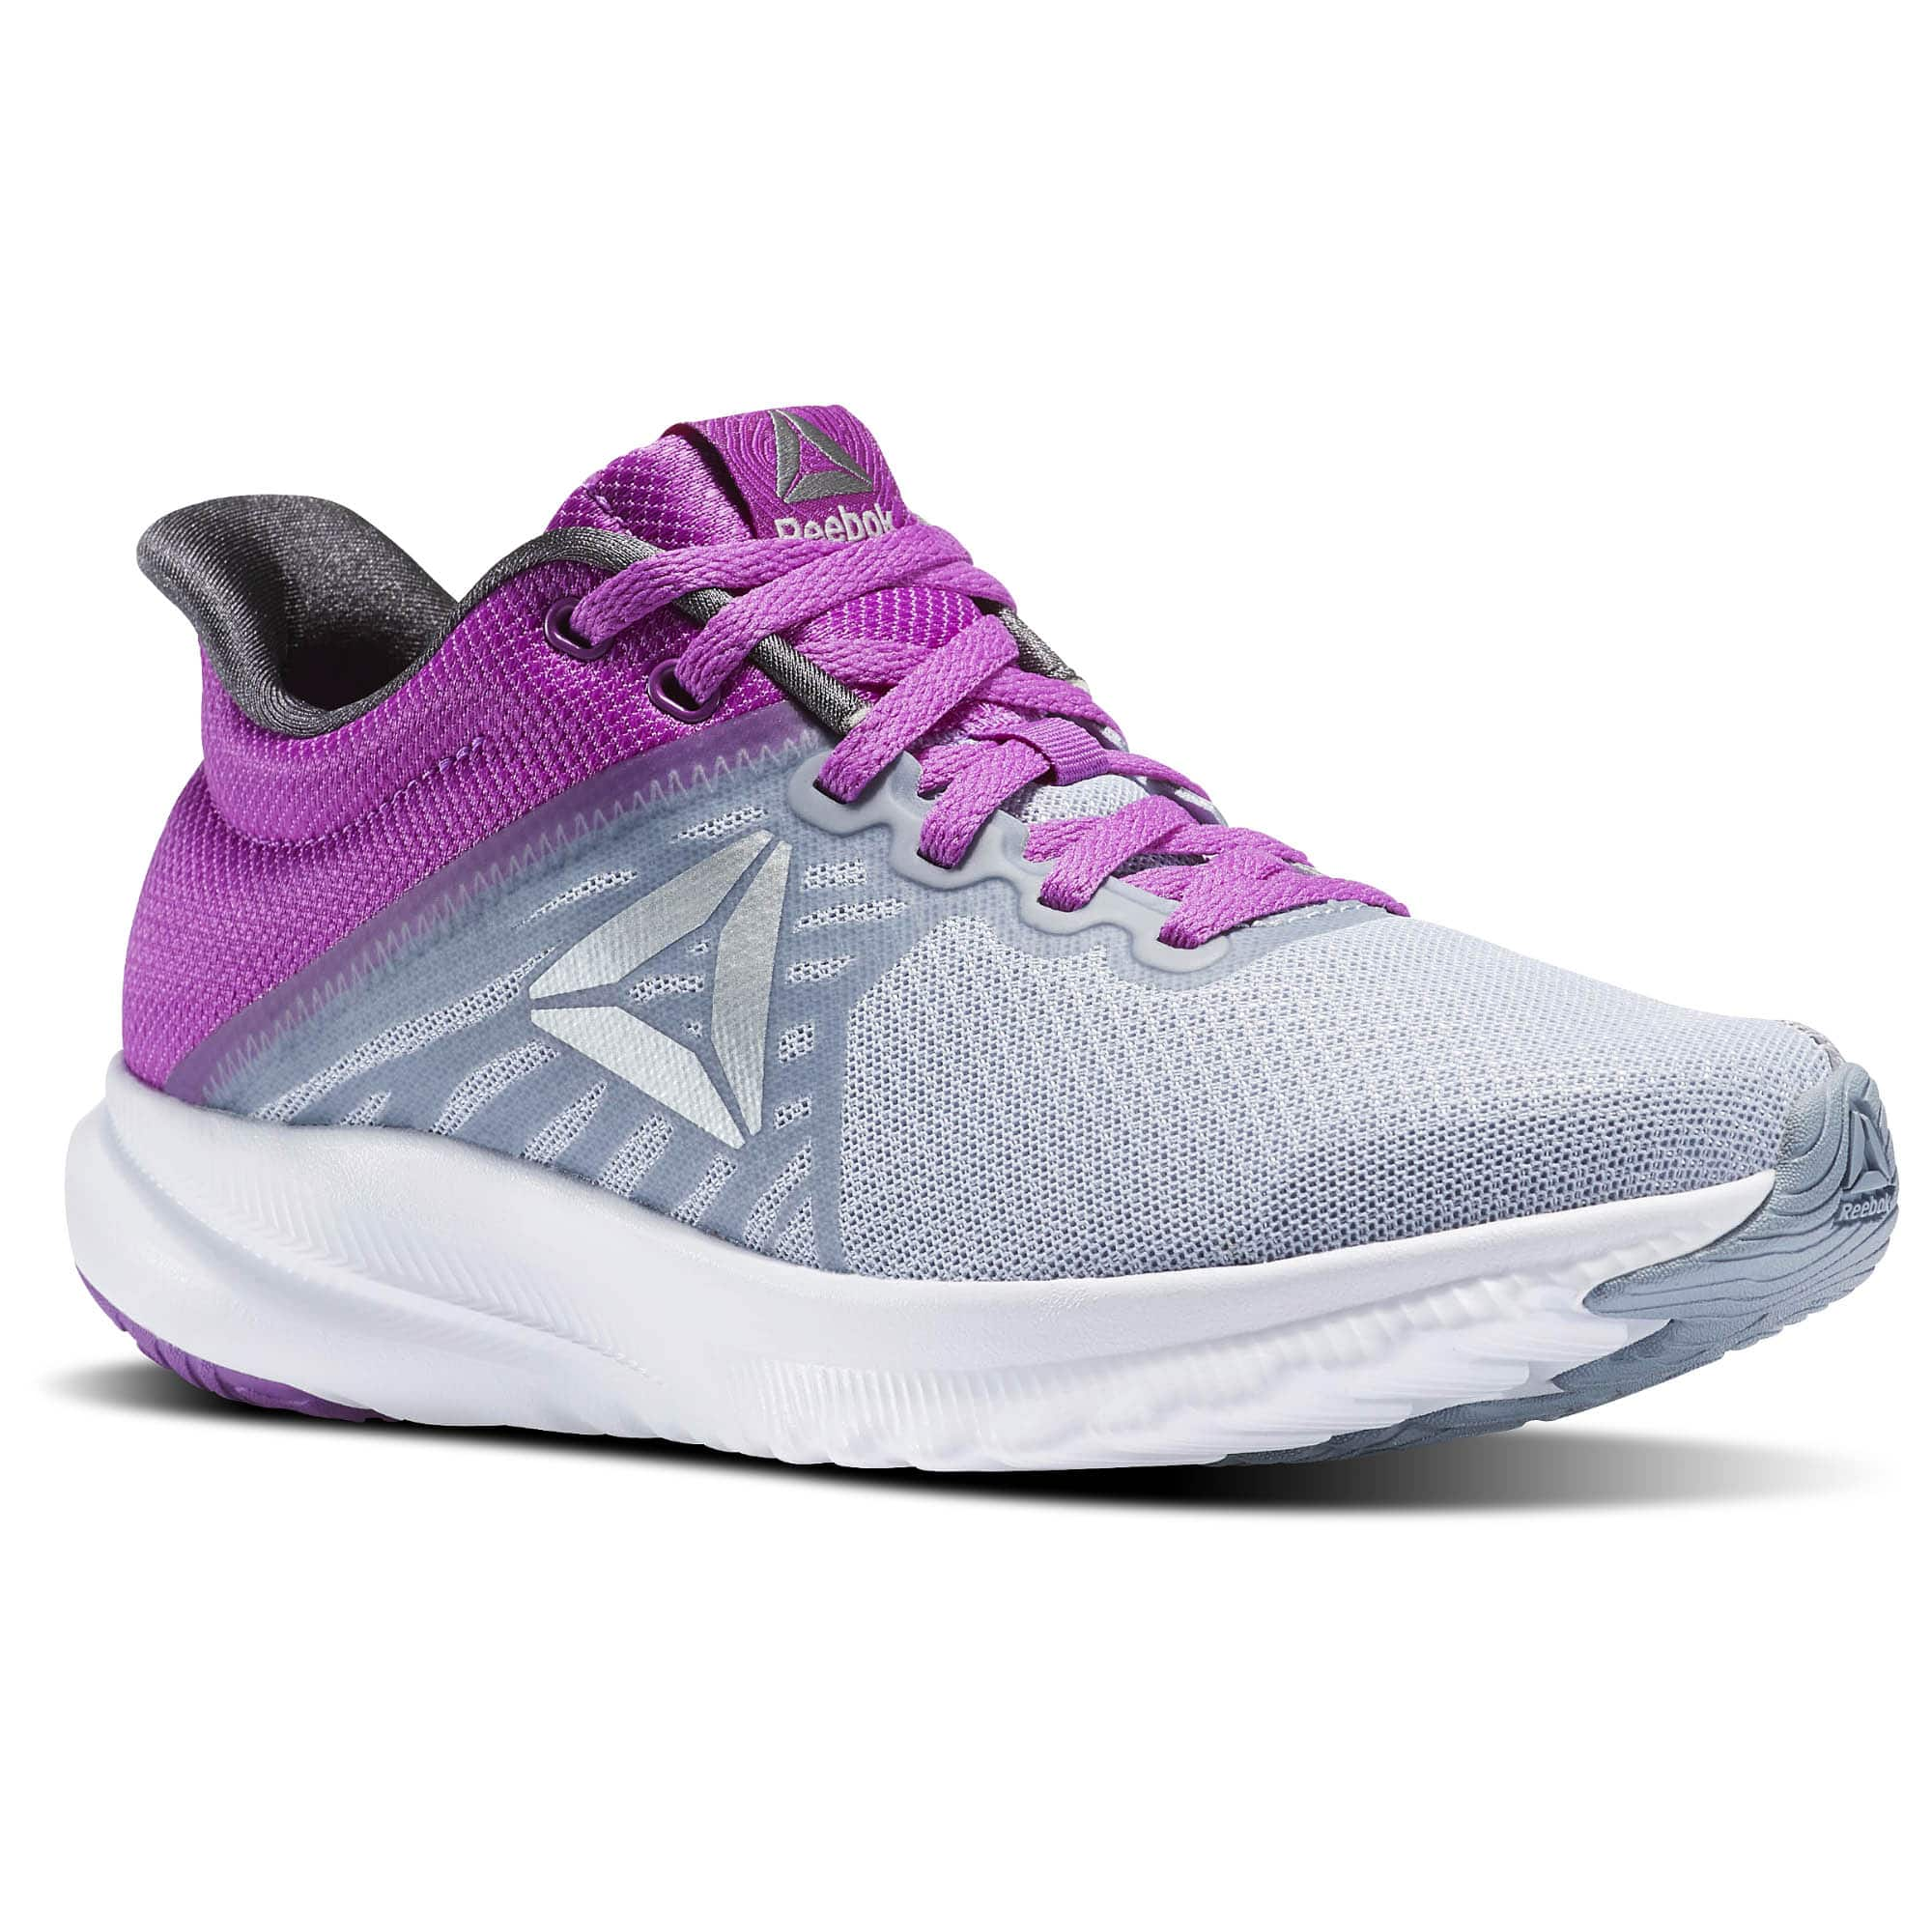 1ed45c71c Reebok Running Shoes Sale  Women s OSR Distance 3.0 - Slickdeals.net